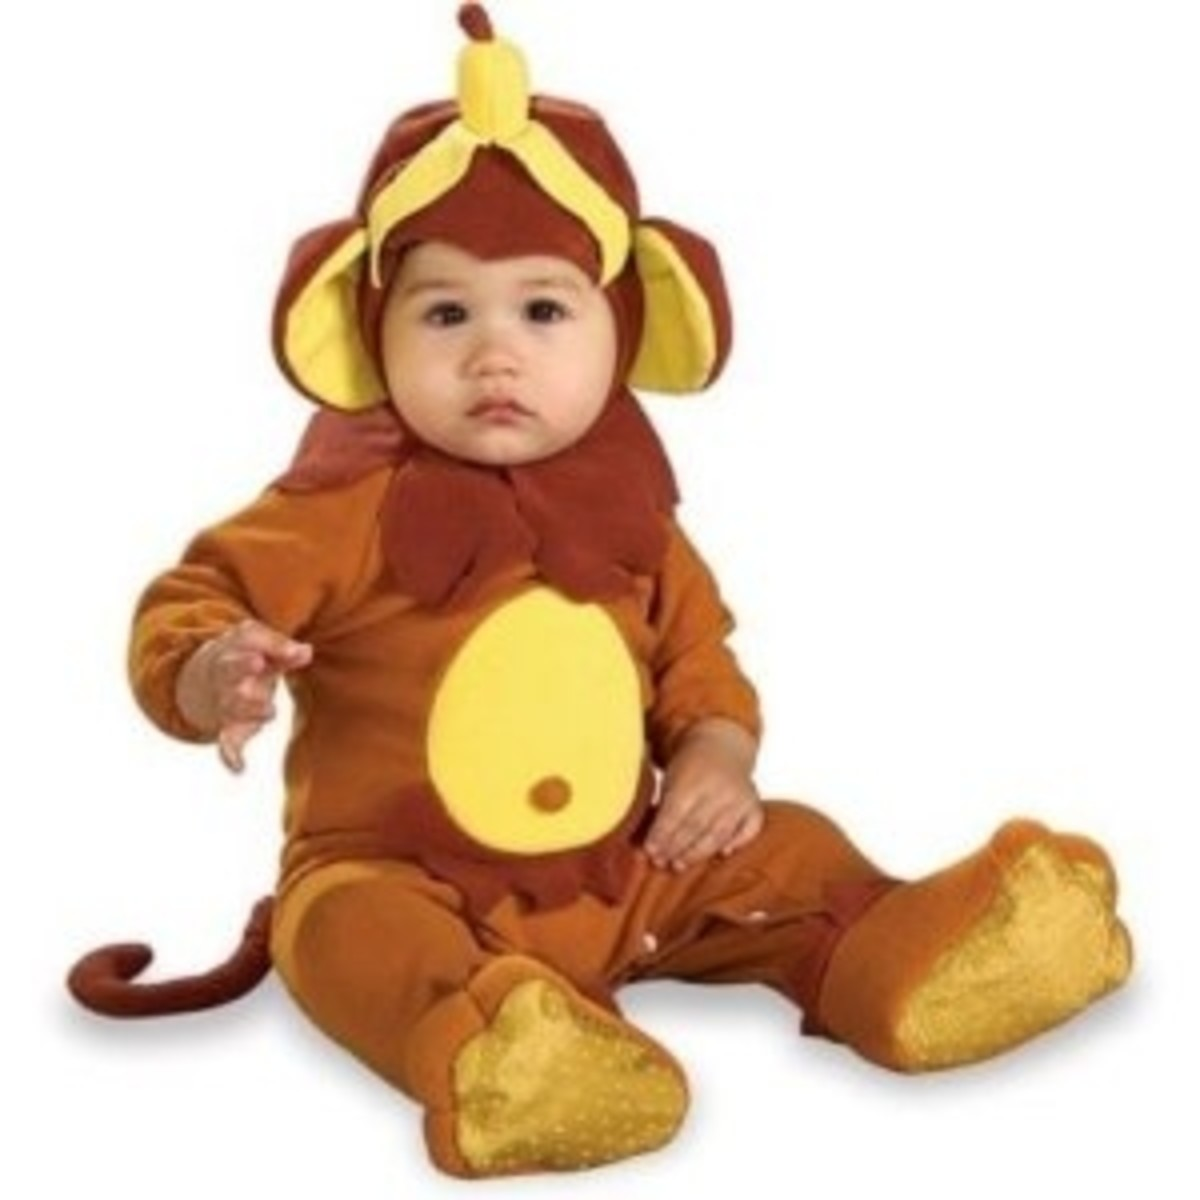 Monkey Costume - Infant Monkey Costume - Monkey See Monkey Do